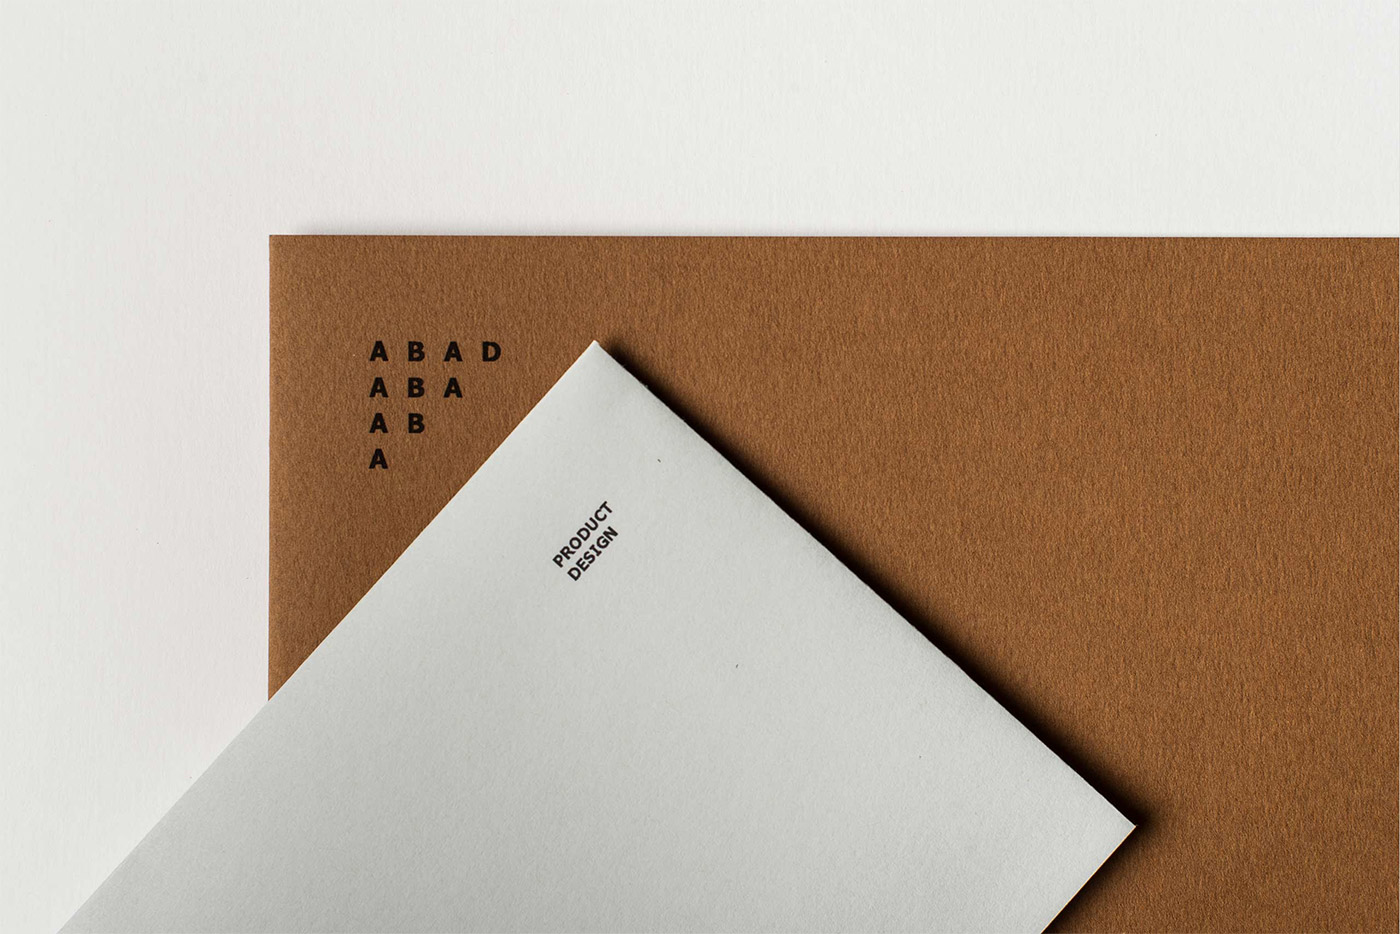 Abad stationery